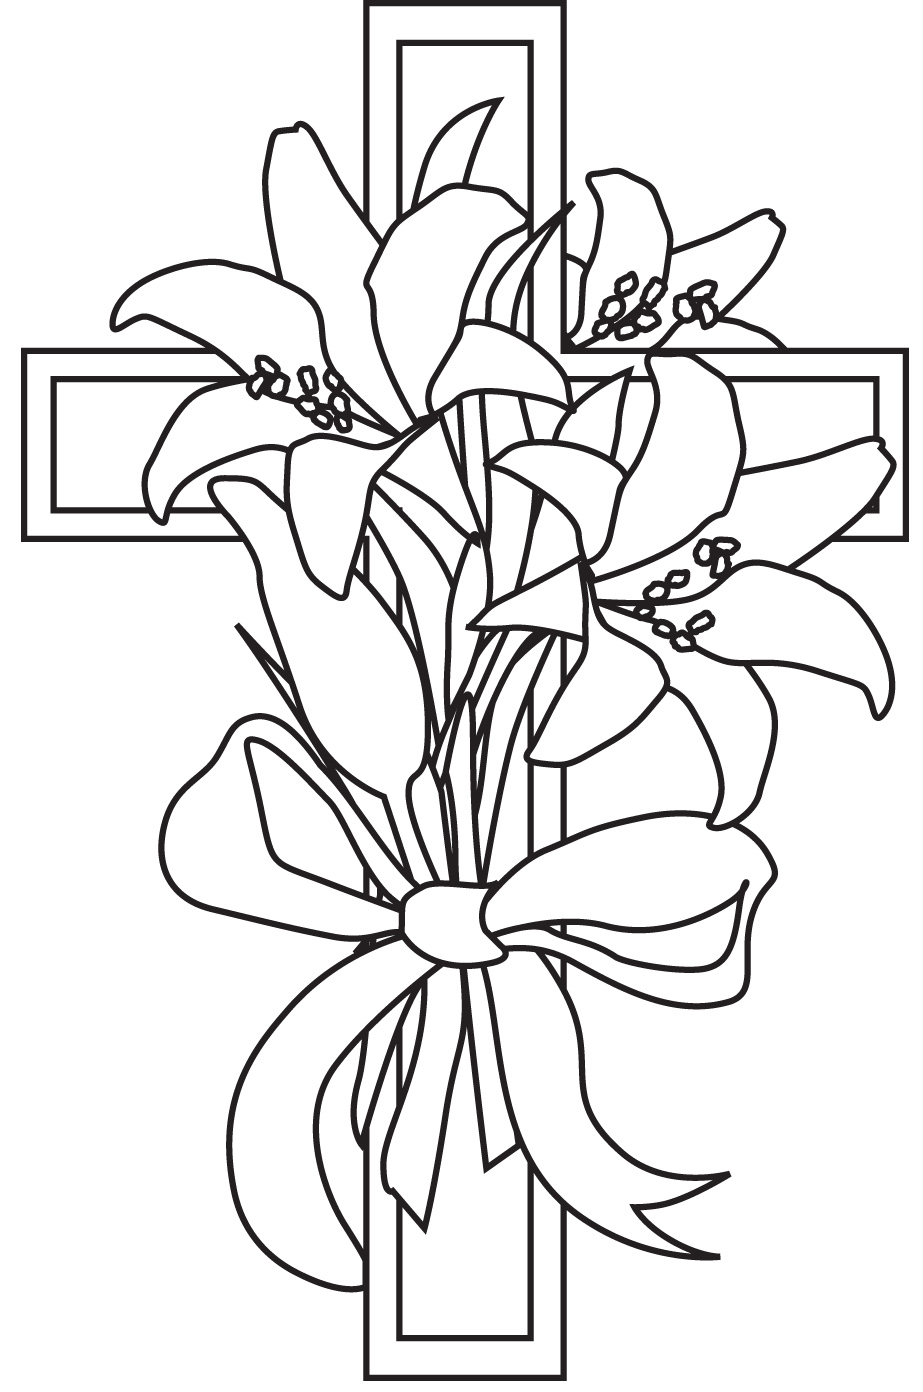 Free Lily Cross Cliparts, Download Free Clip Art, Free Clip Art on.